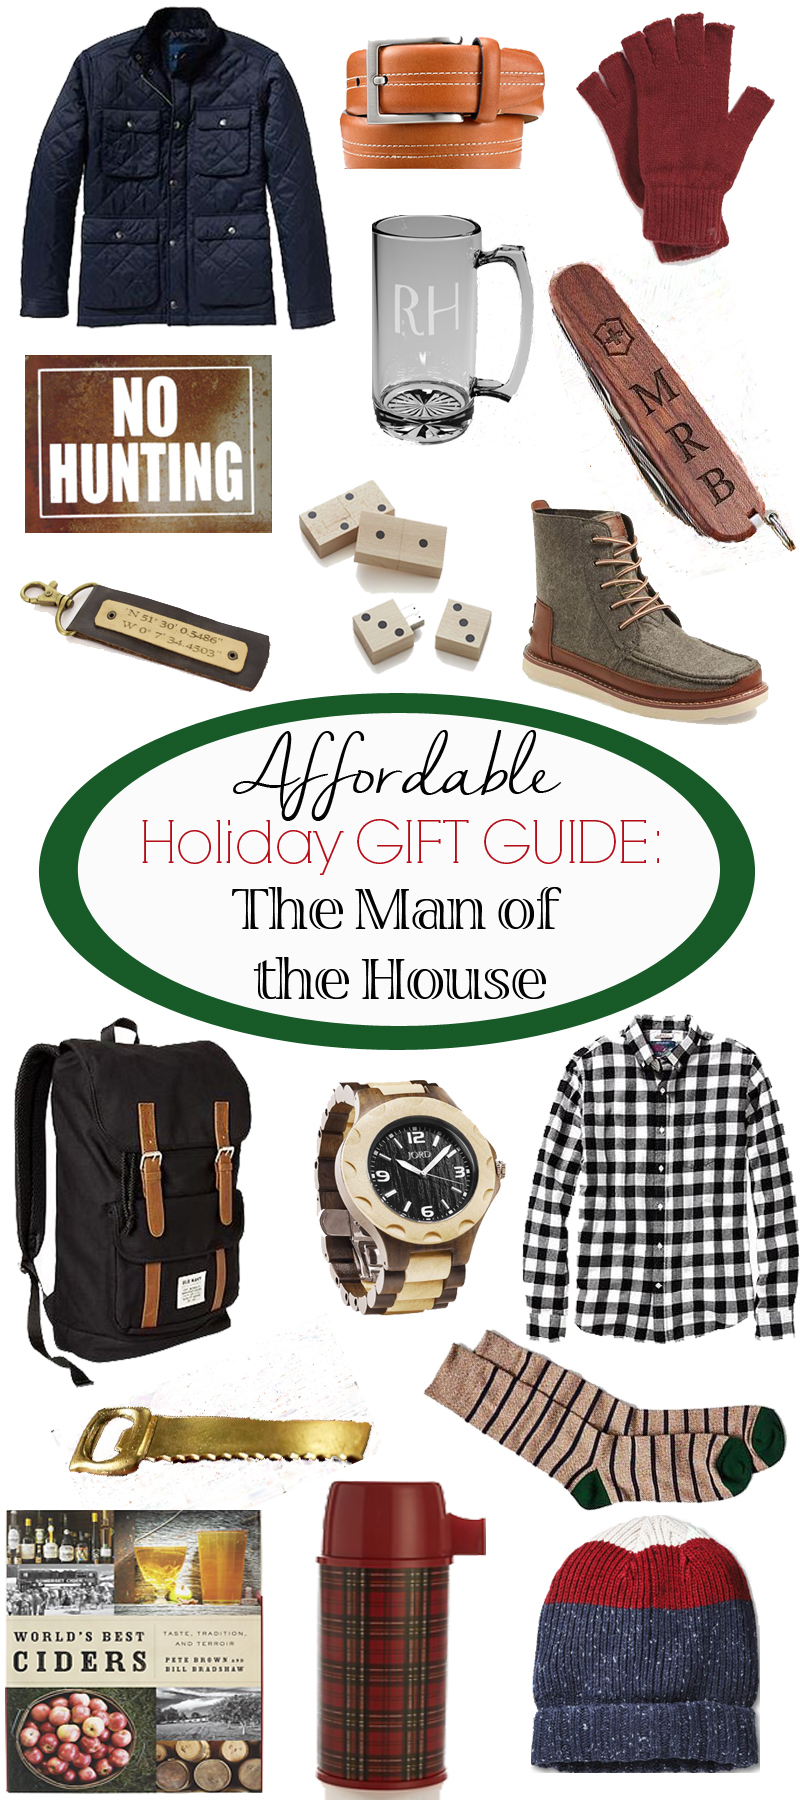 Affordable Gifts for the Man of the House